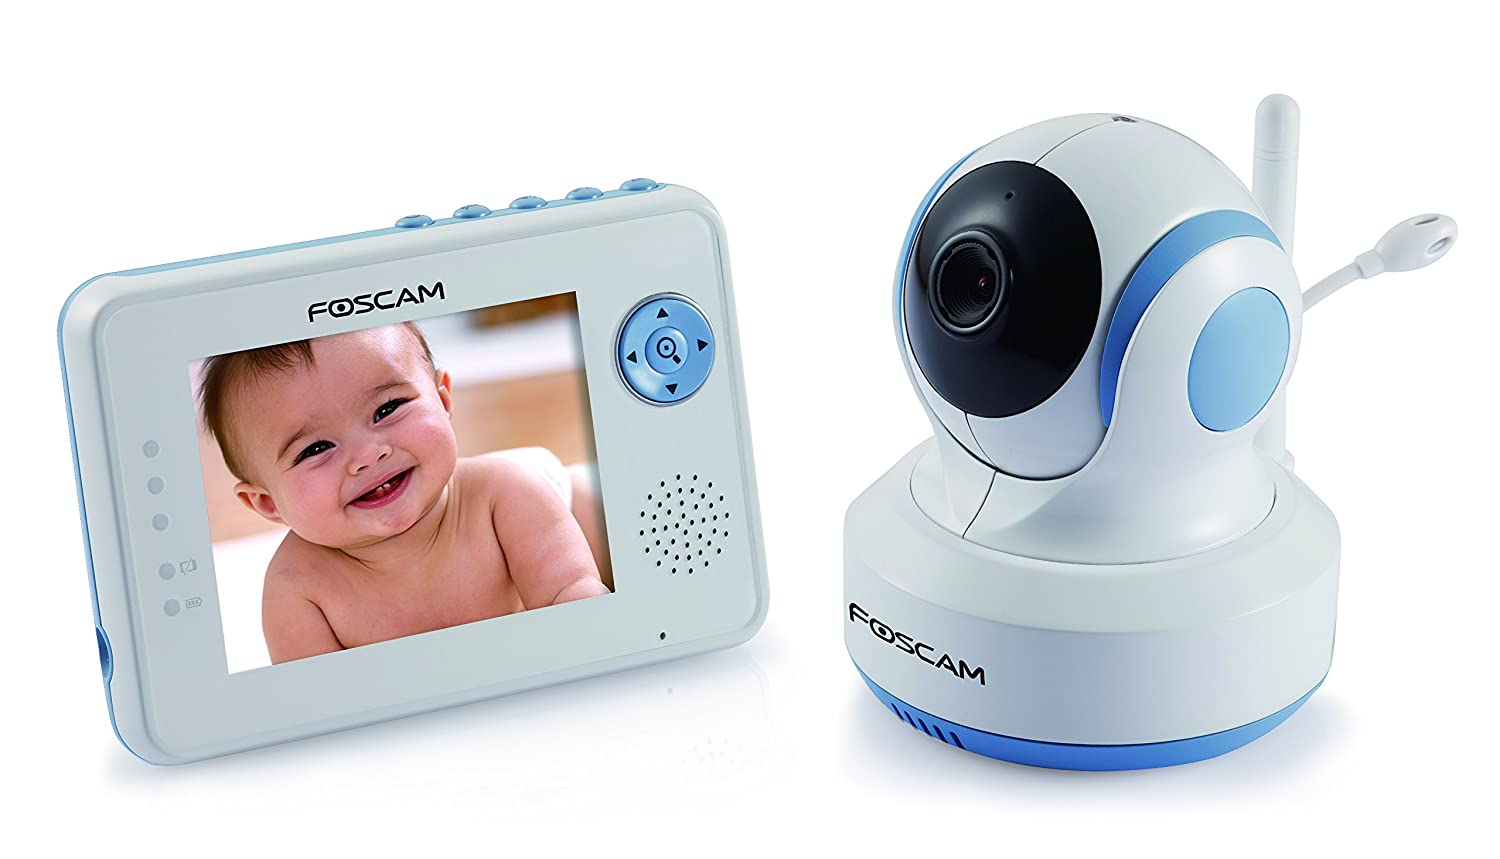 Foscam FBM3502 Digital Video Baby Monitor, Auto Motion Tracking, White/Blue